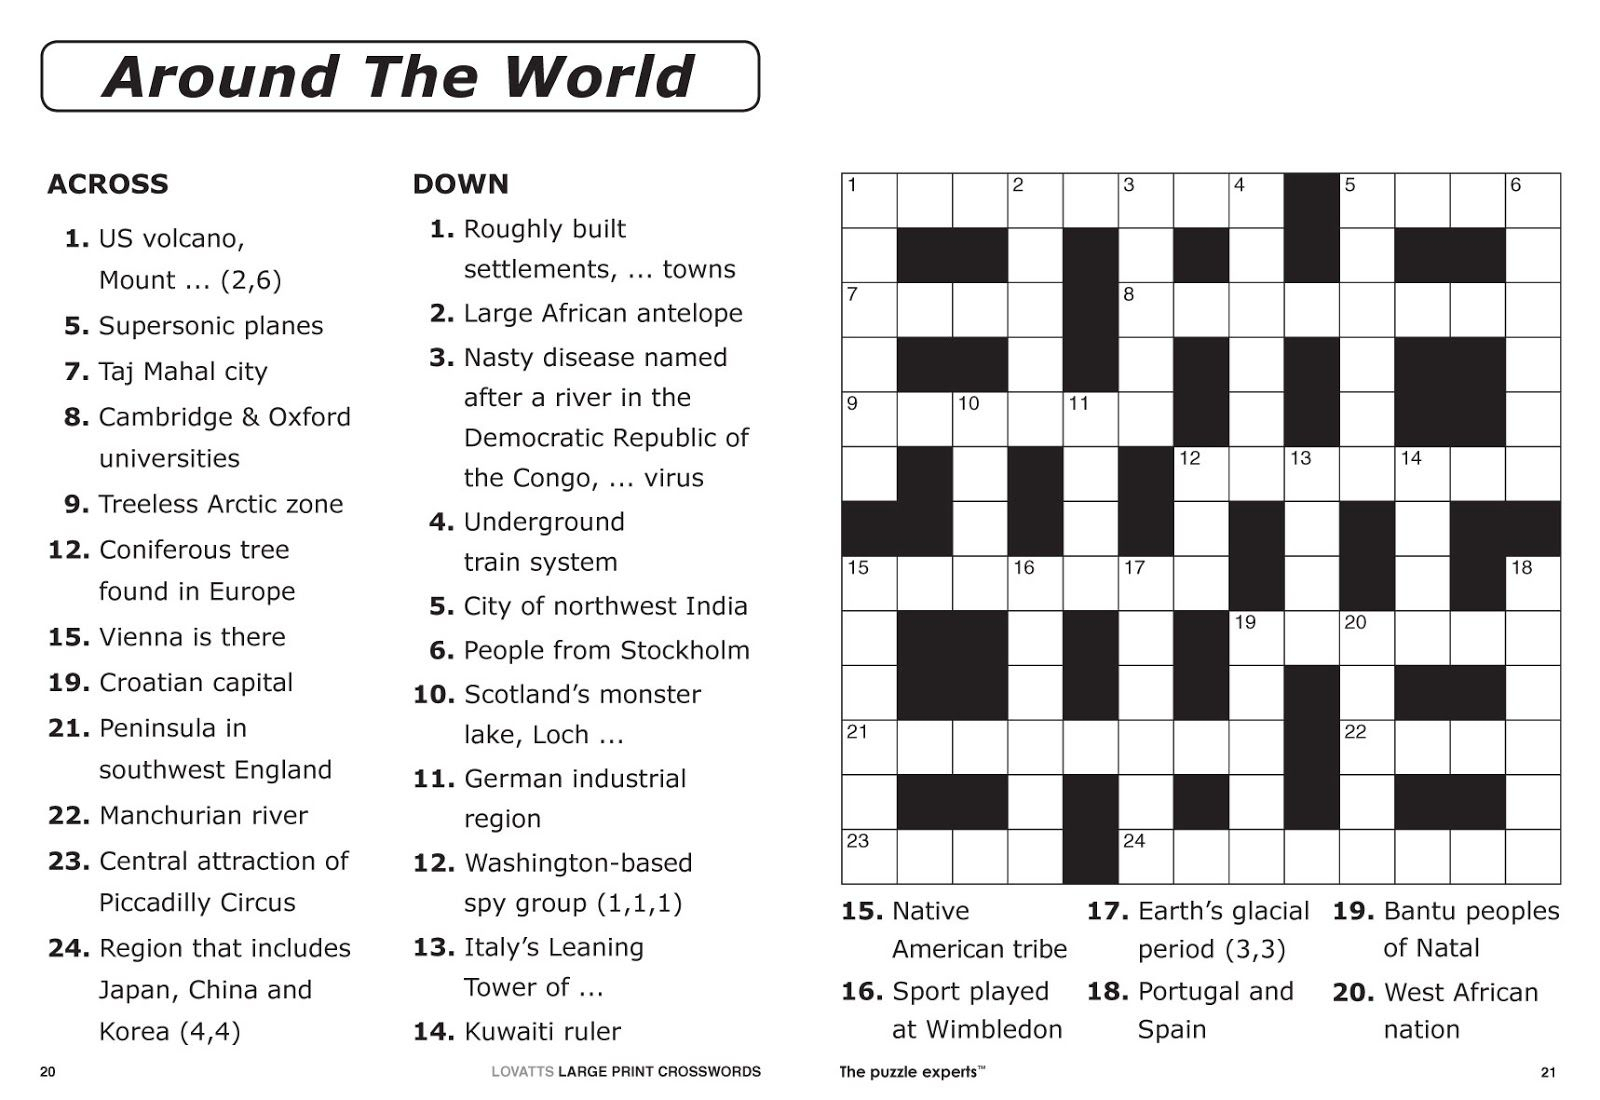 Free Printable Large Print Crossword Puzzles | M3U8 - Printable Japanese Puzzles